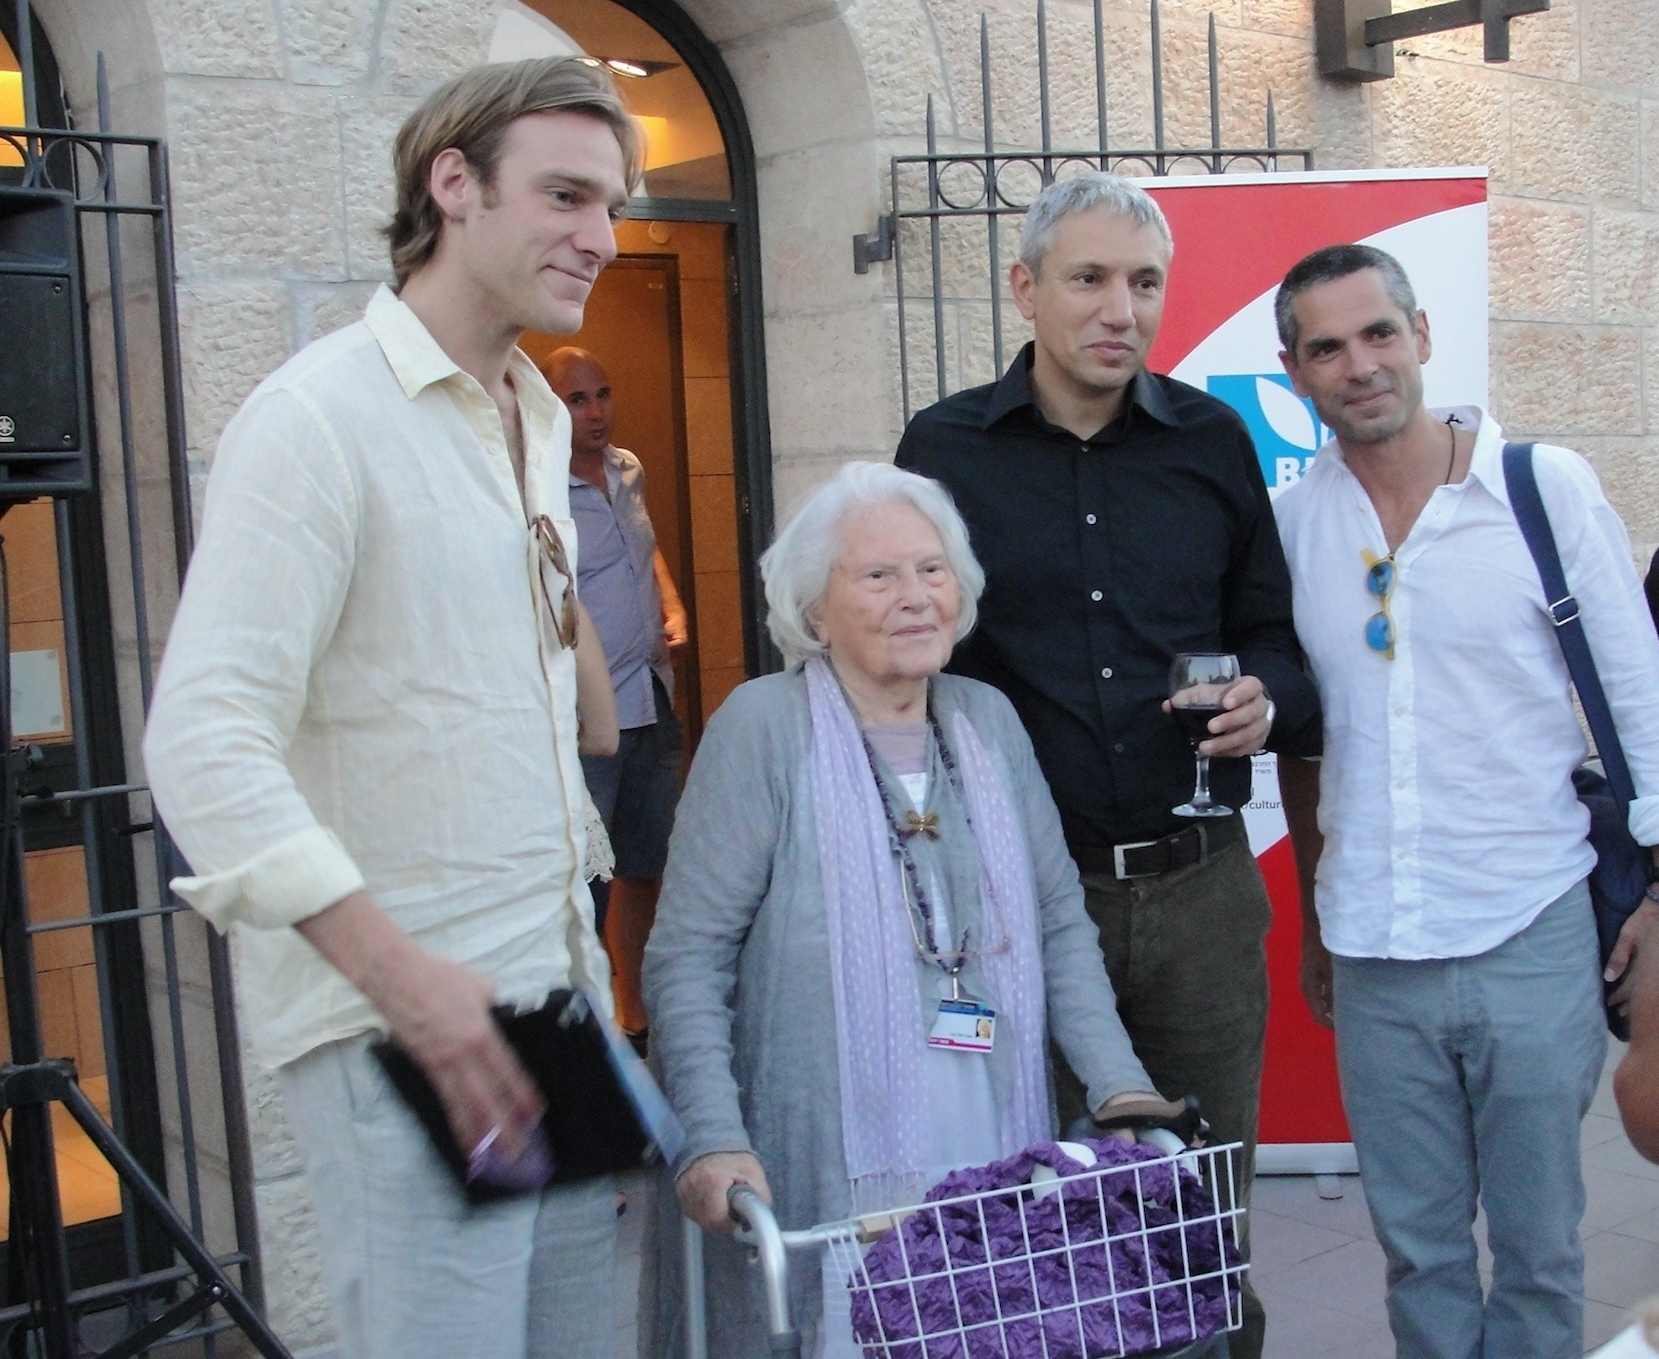 Click photo to download. Caption: The Jerusalem International Film Festival's founder, the late Lia Van Leer (second from left), is pictured at the 2012 festival. Van Leer died earlier this year, and the recent 2015 festival featured a tribute to her that attracted hundreds who remembered her persistence in trying to make the Jerusalem Cinematheque open to all in Israel's capital. Credit: Judy Lash Balint.